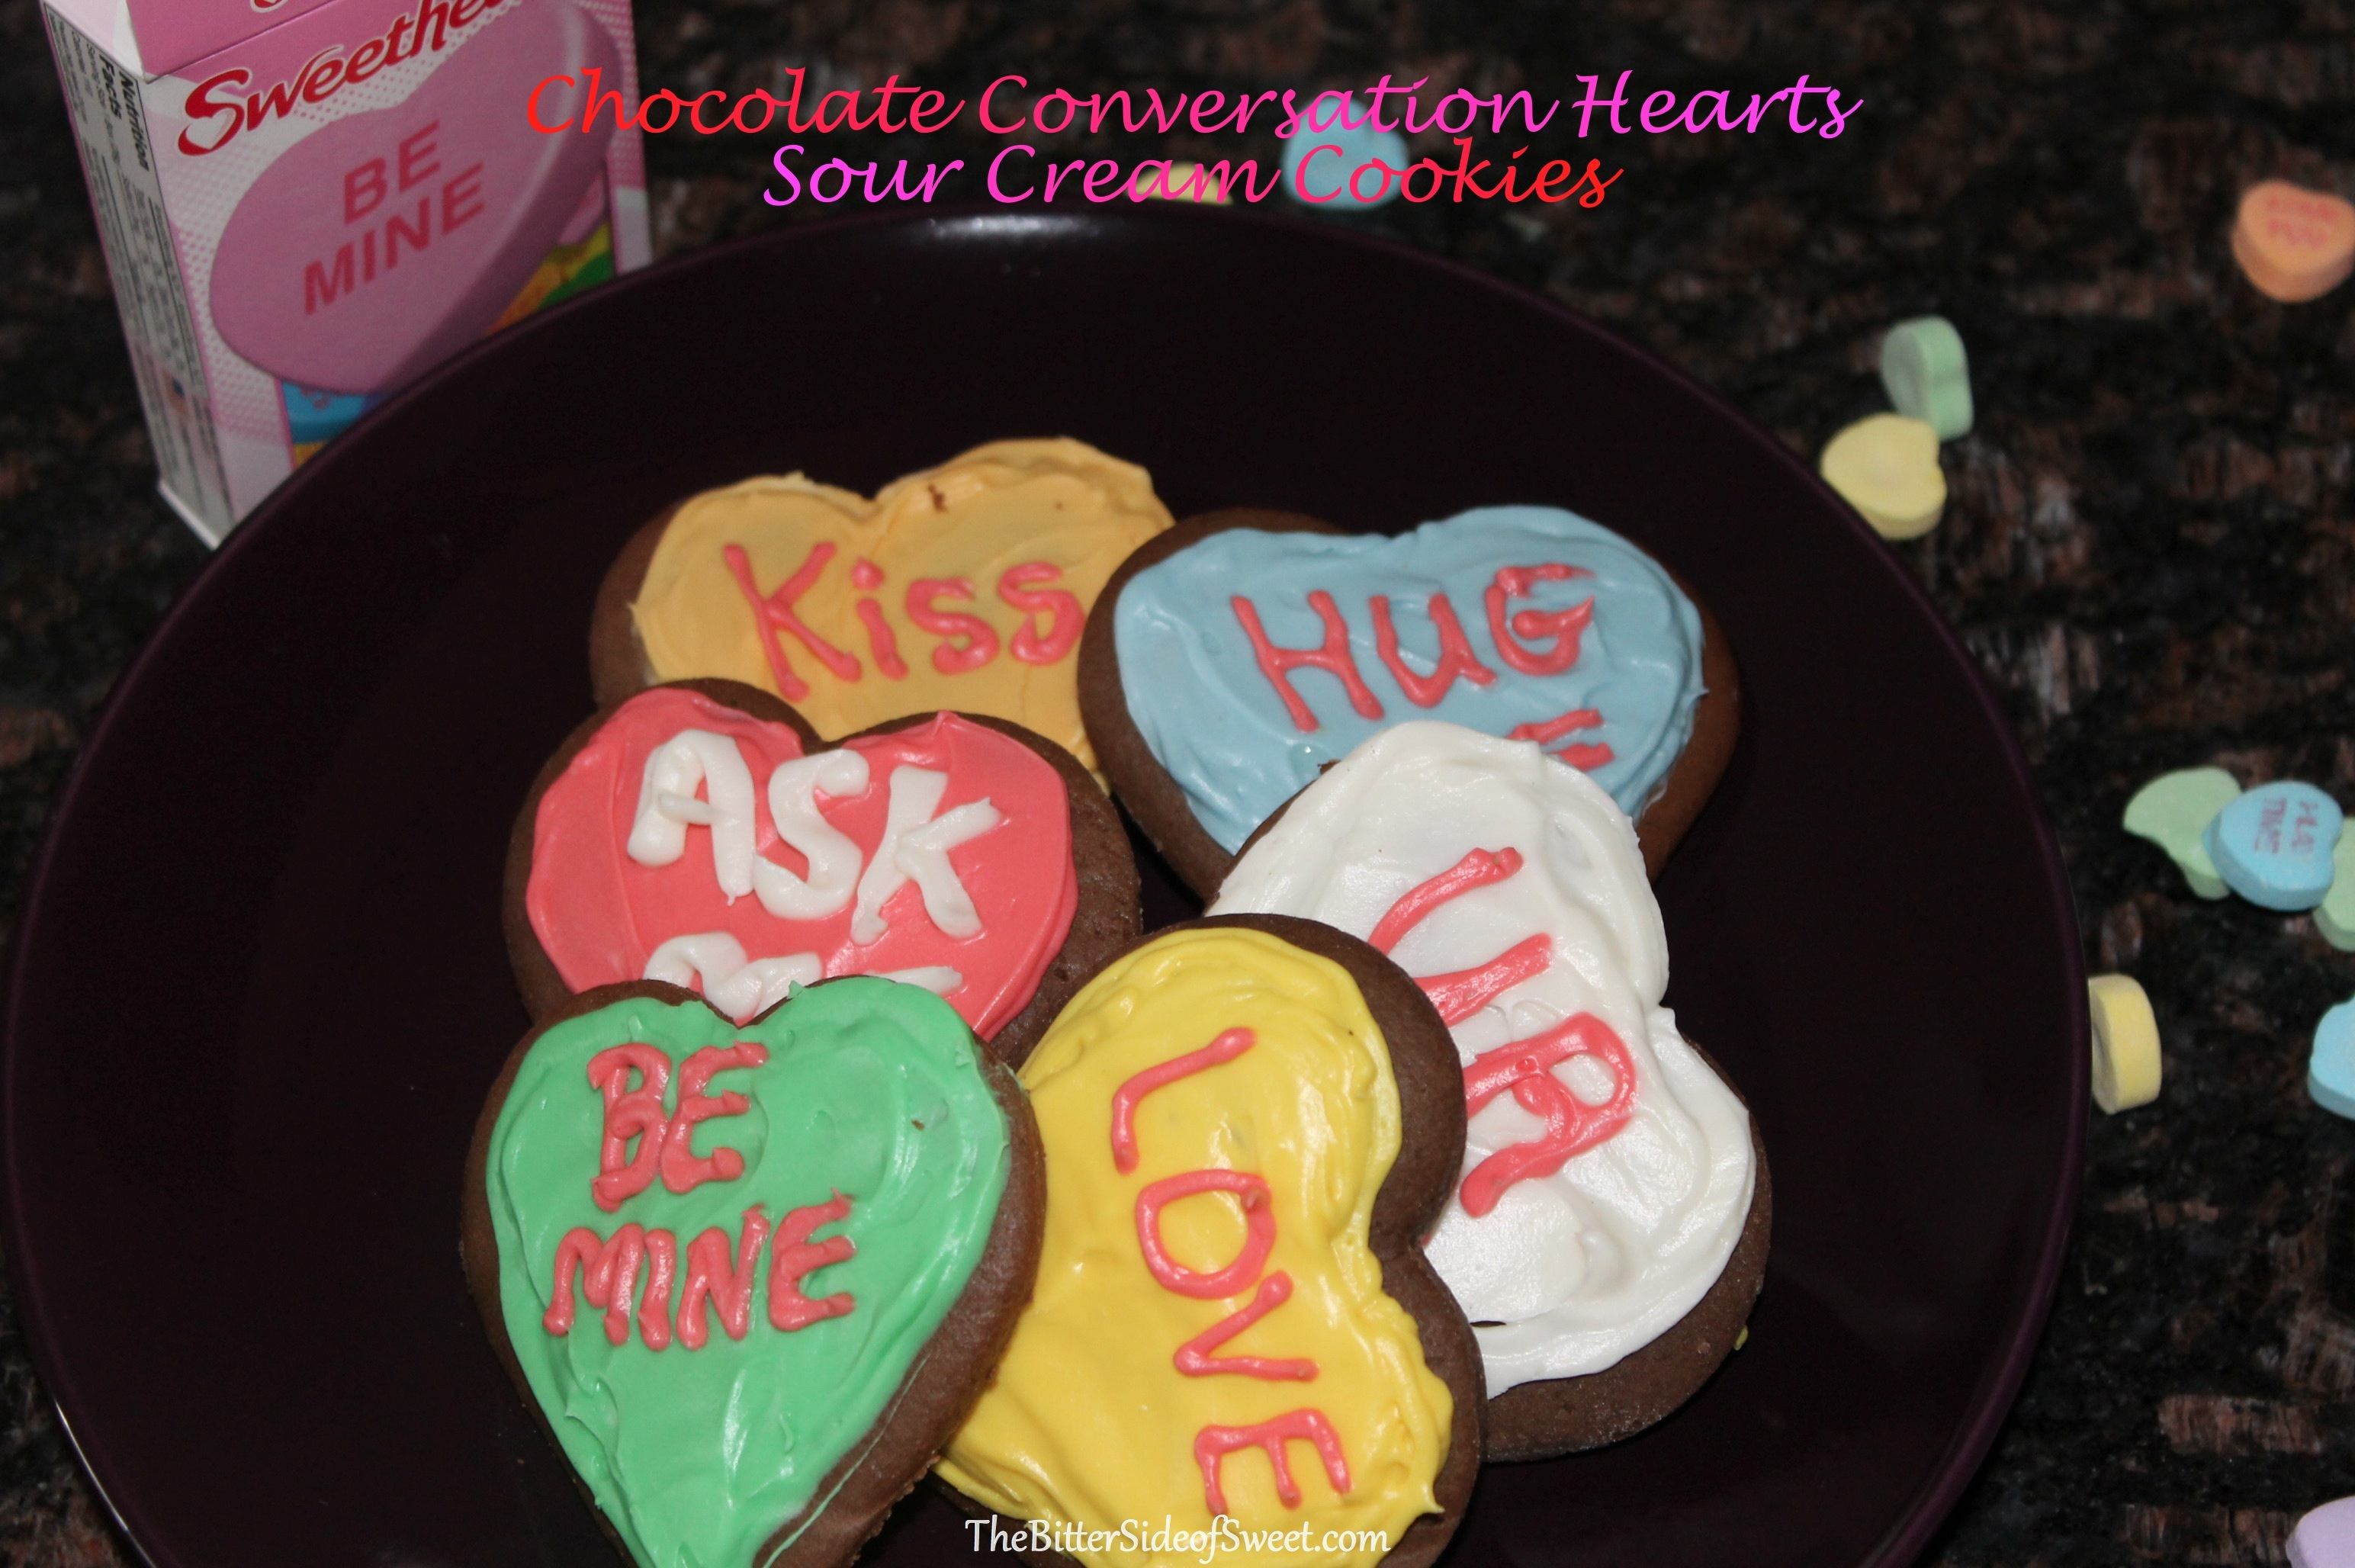 Chocolate Conversation Hearts Sour Cream Cookies